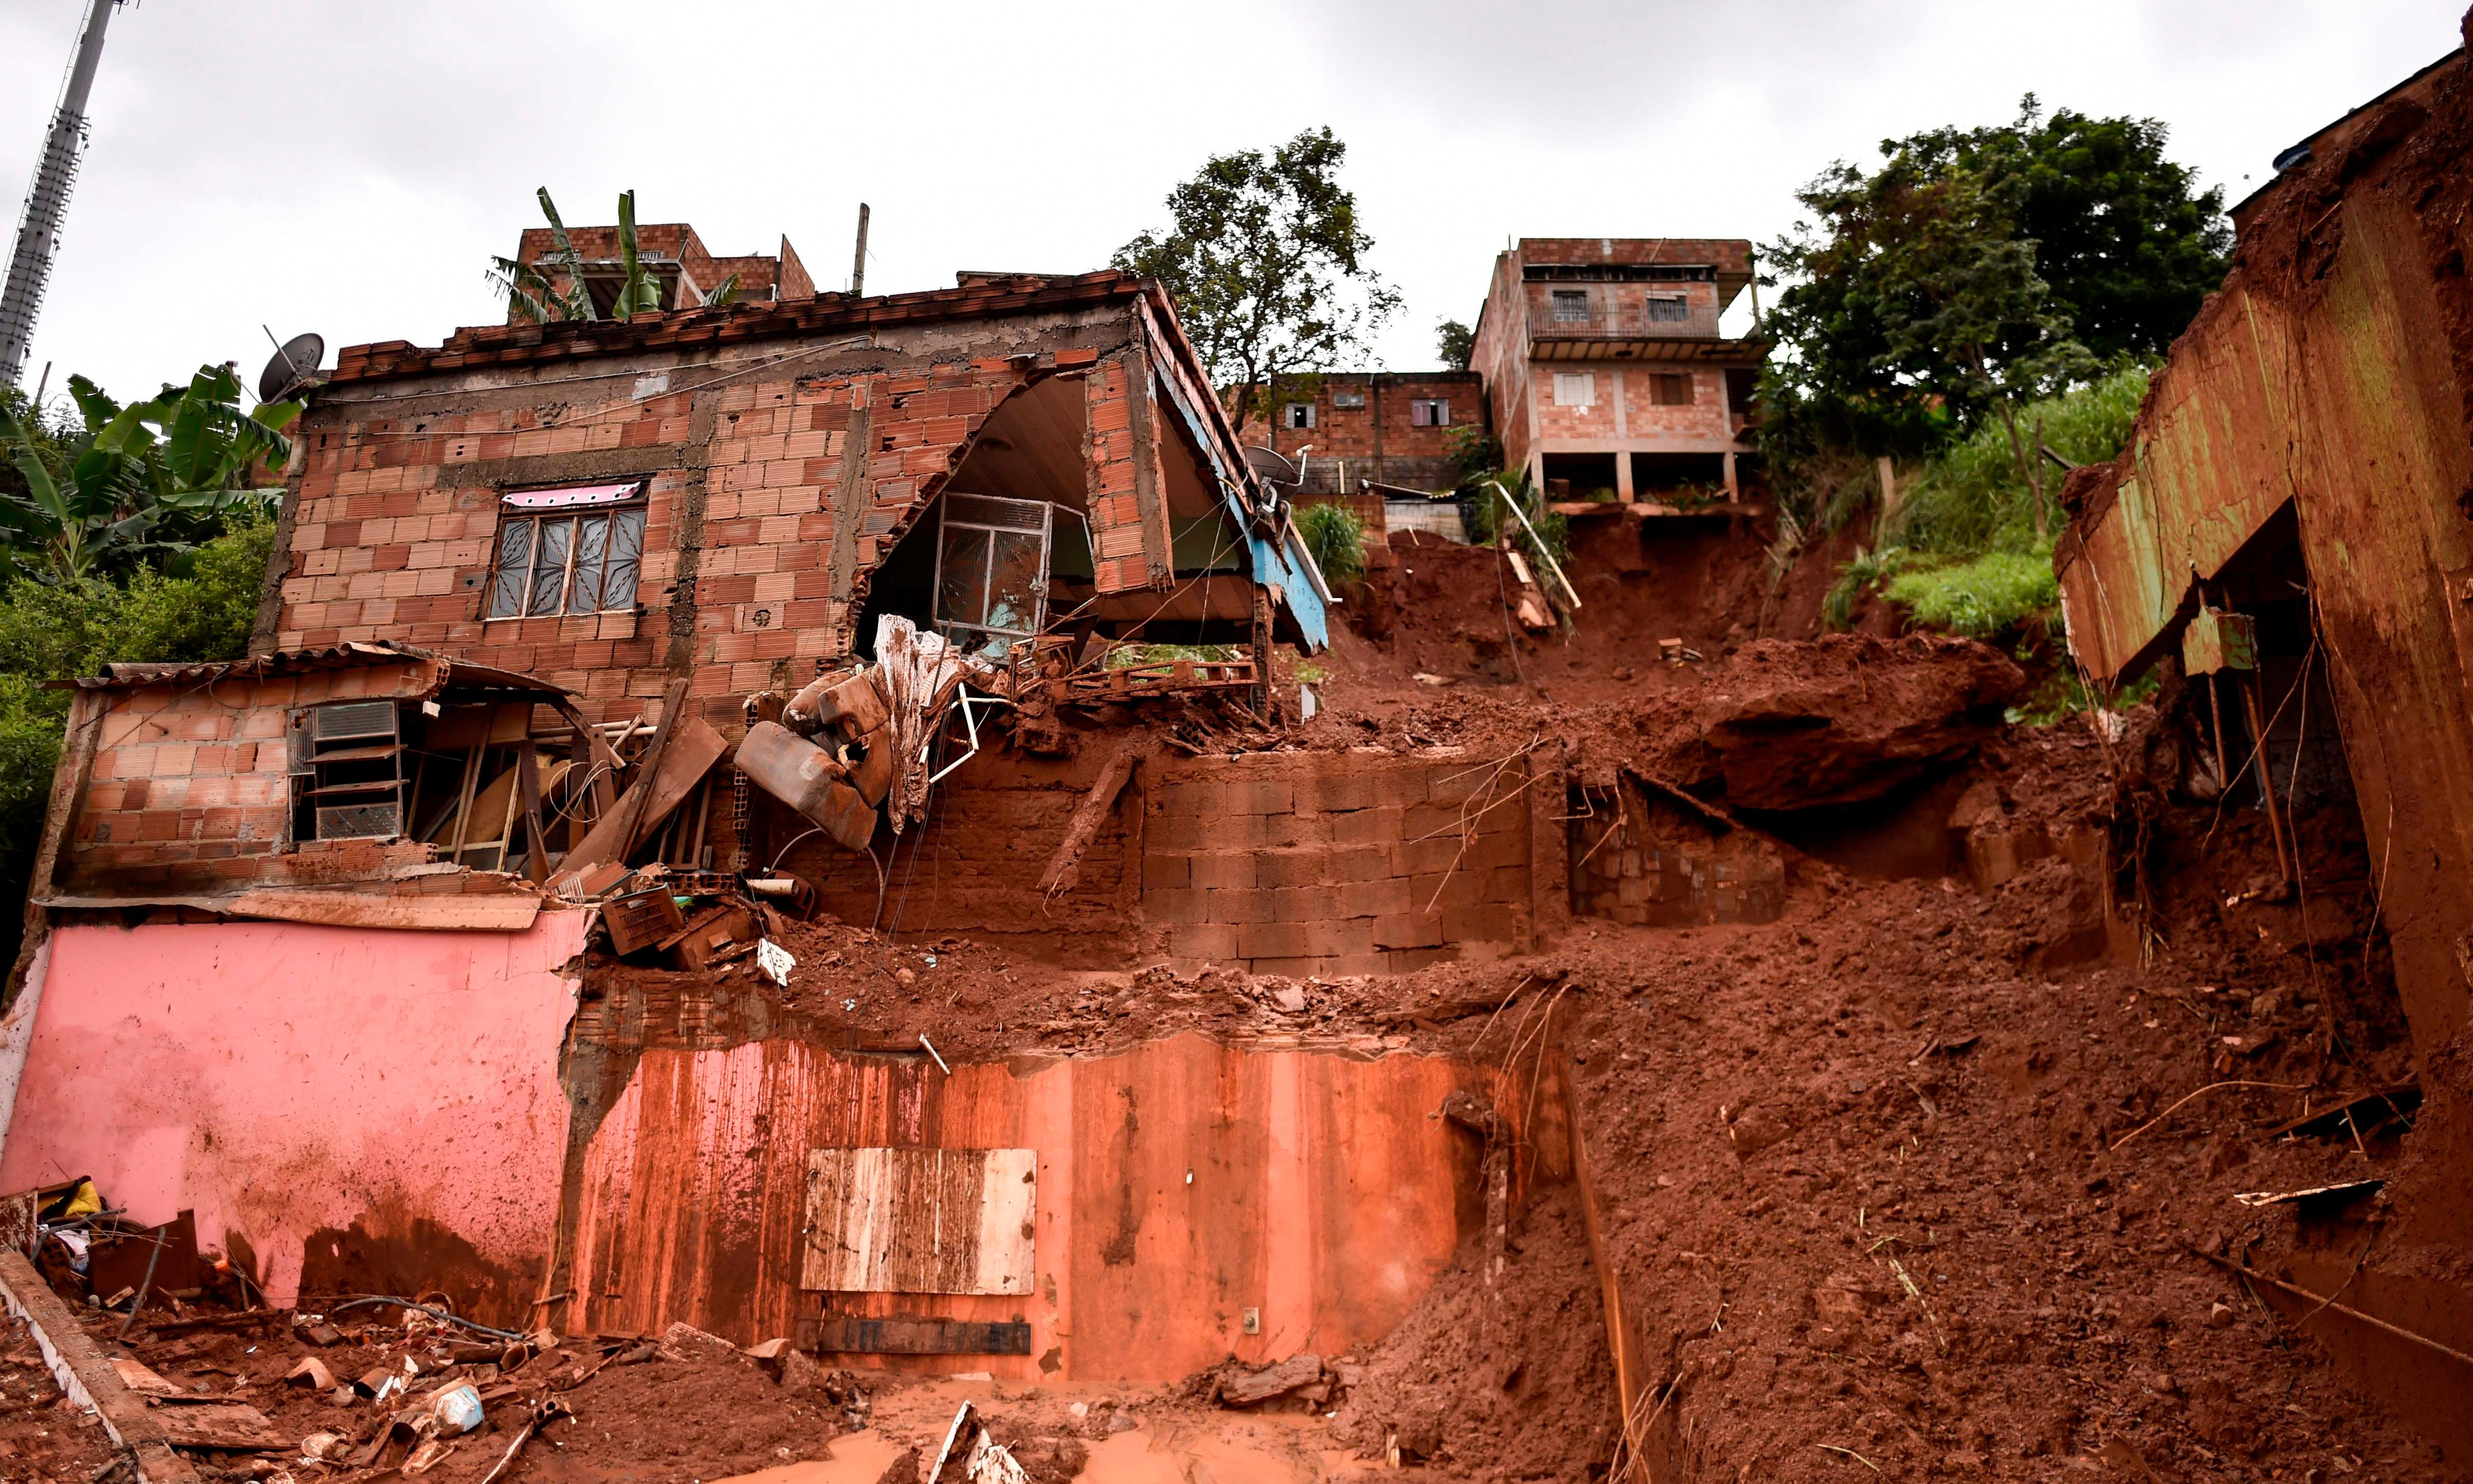 Scores dead as heavy rains bring landslides and evacuations in Brazil